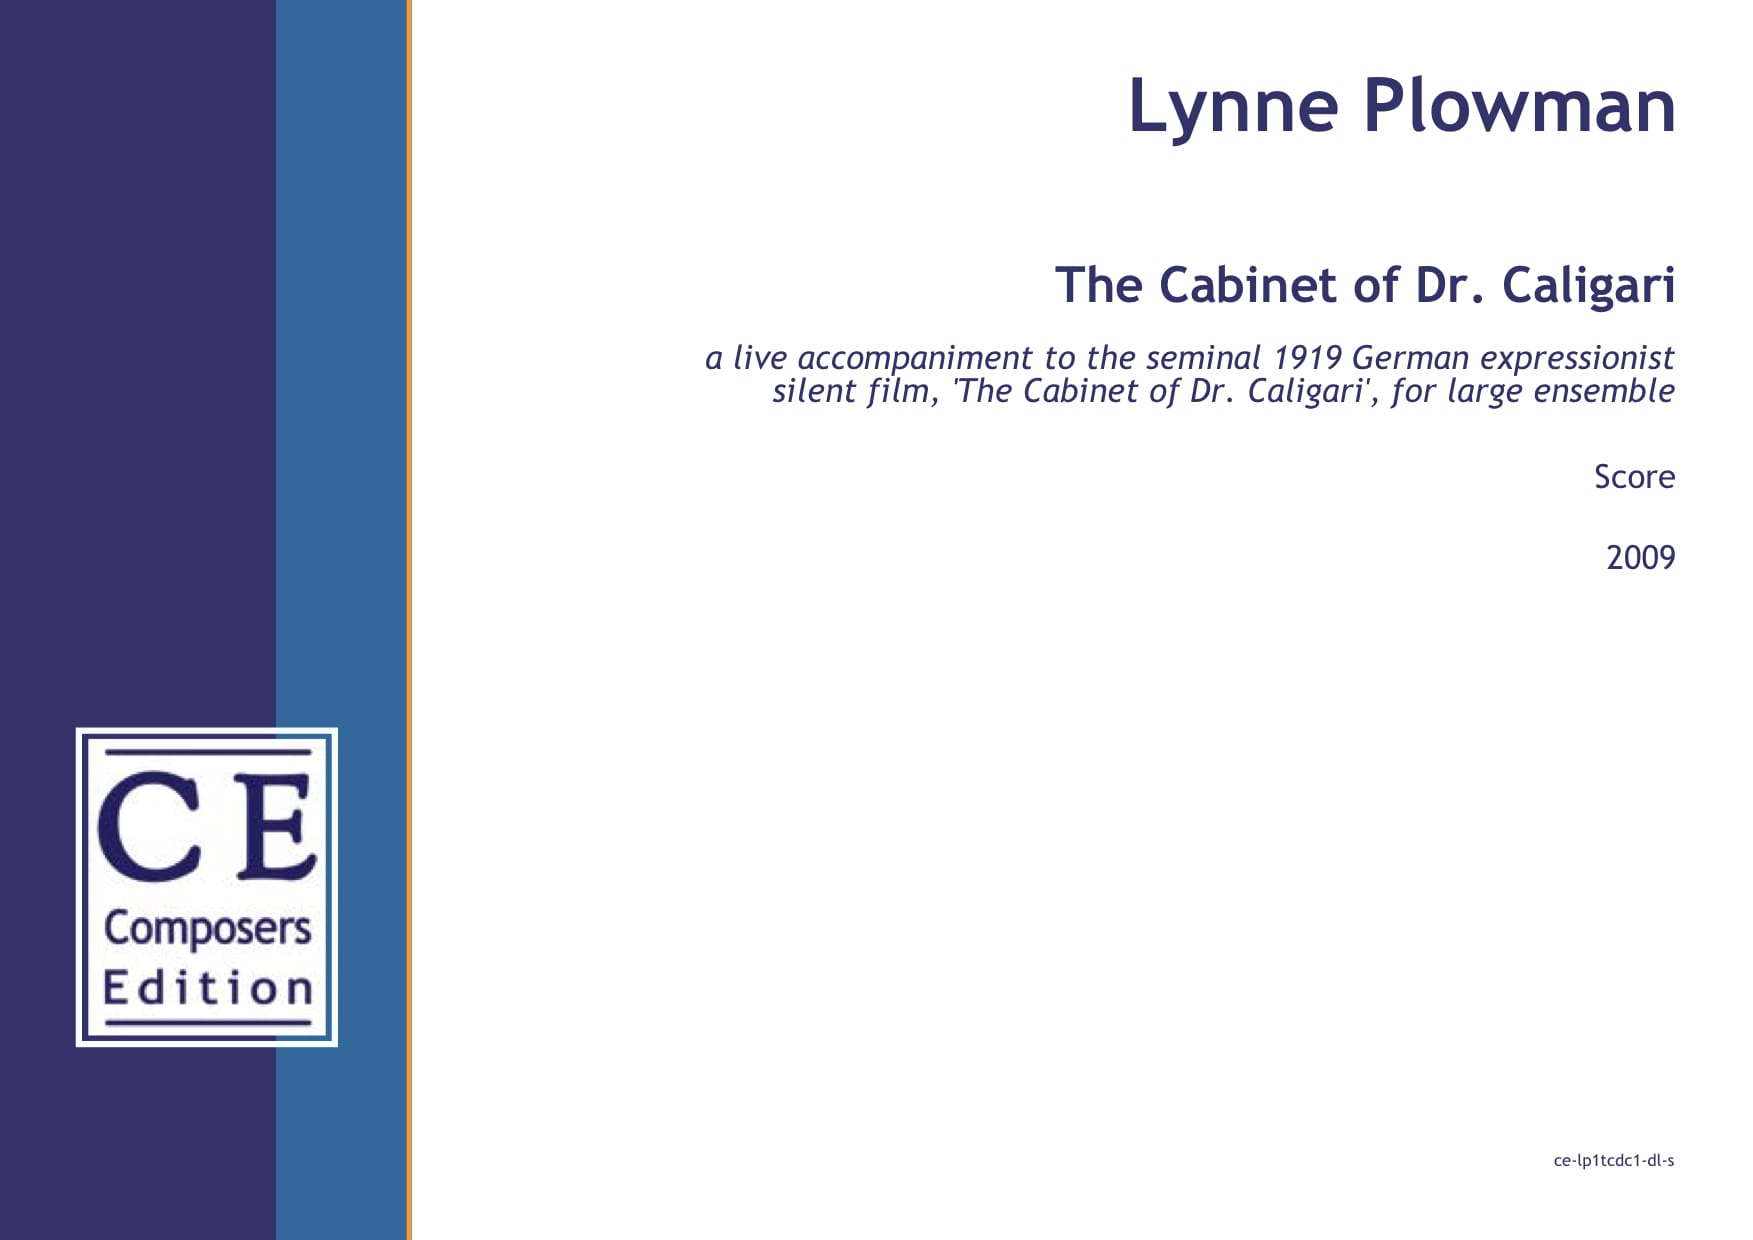 Lynne Plowman: The Cabinet of Dr. Caligari a live accompaniment to the seminal 1919 German expressionist silent film, 'The Cabinet of Dr. Caligari', for large ensemble